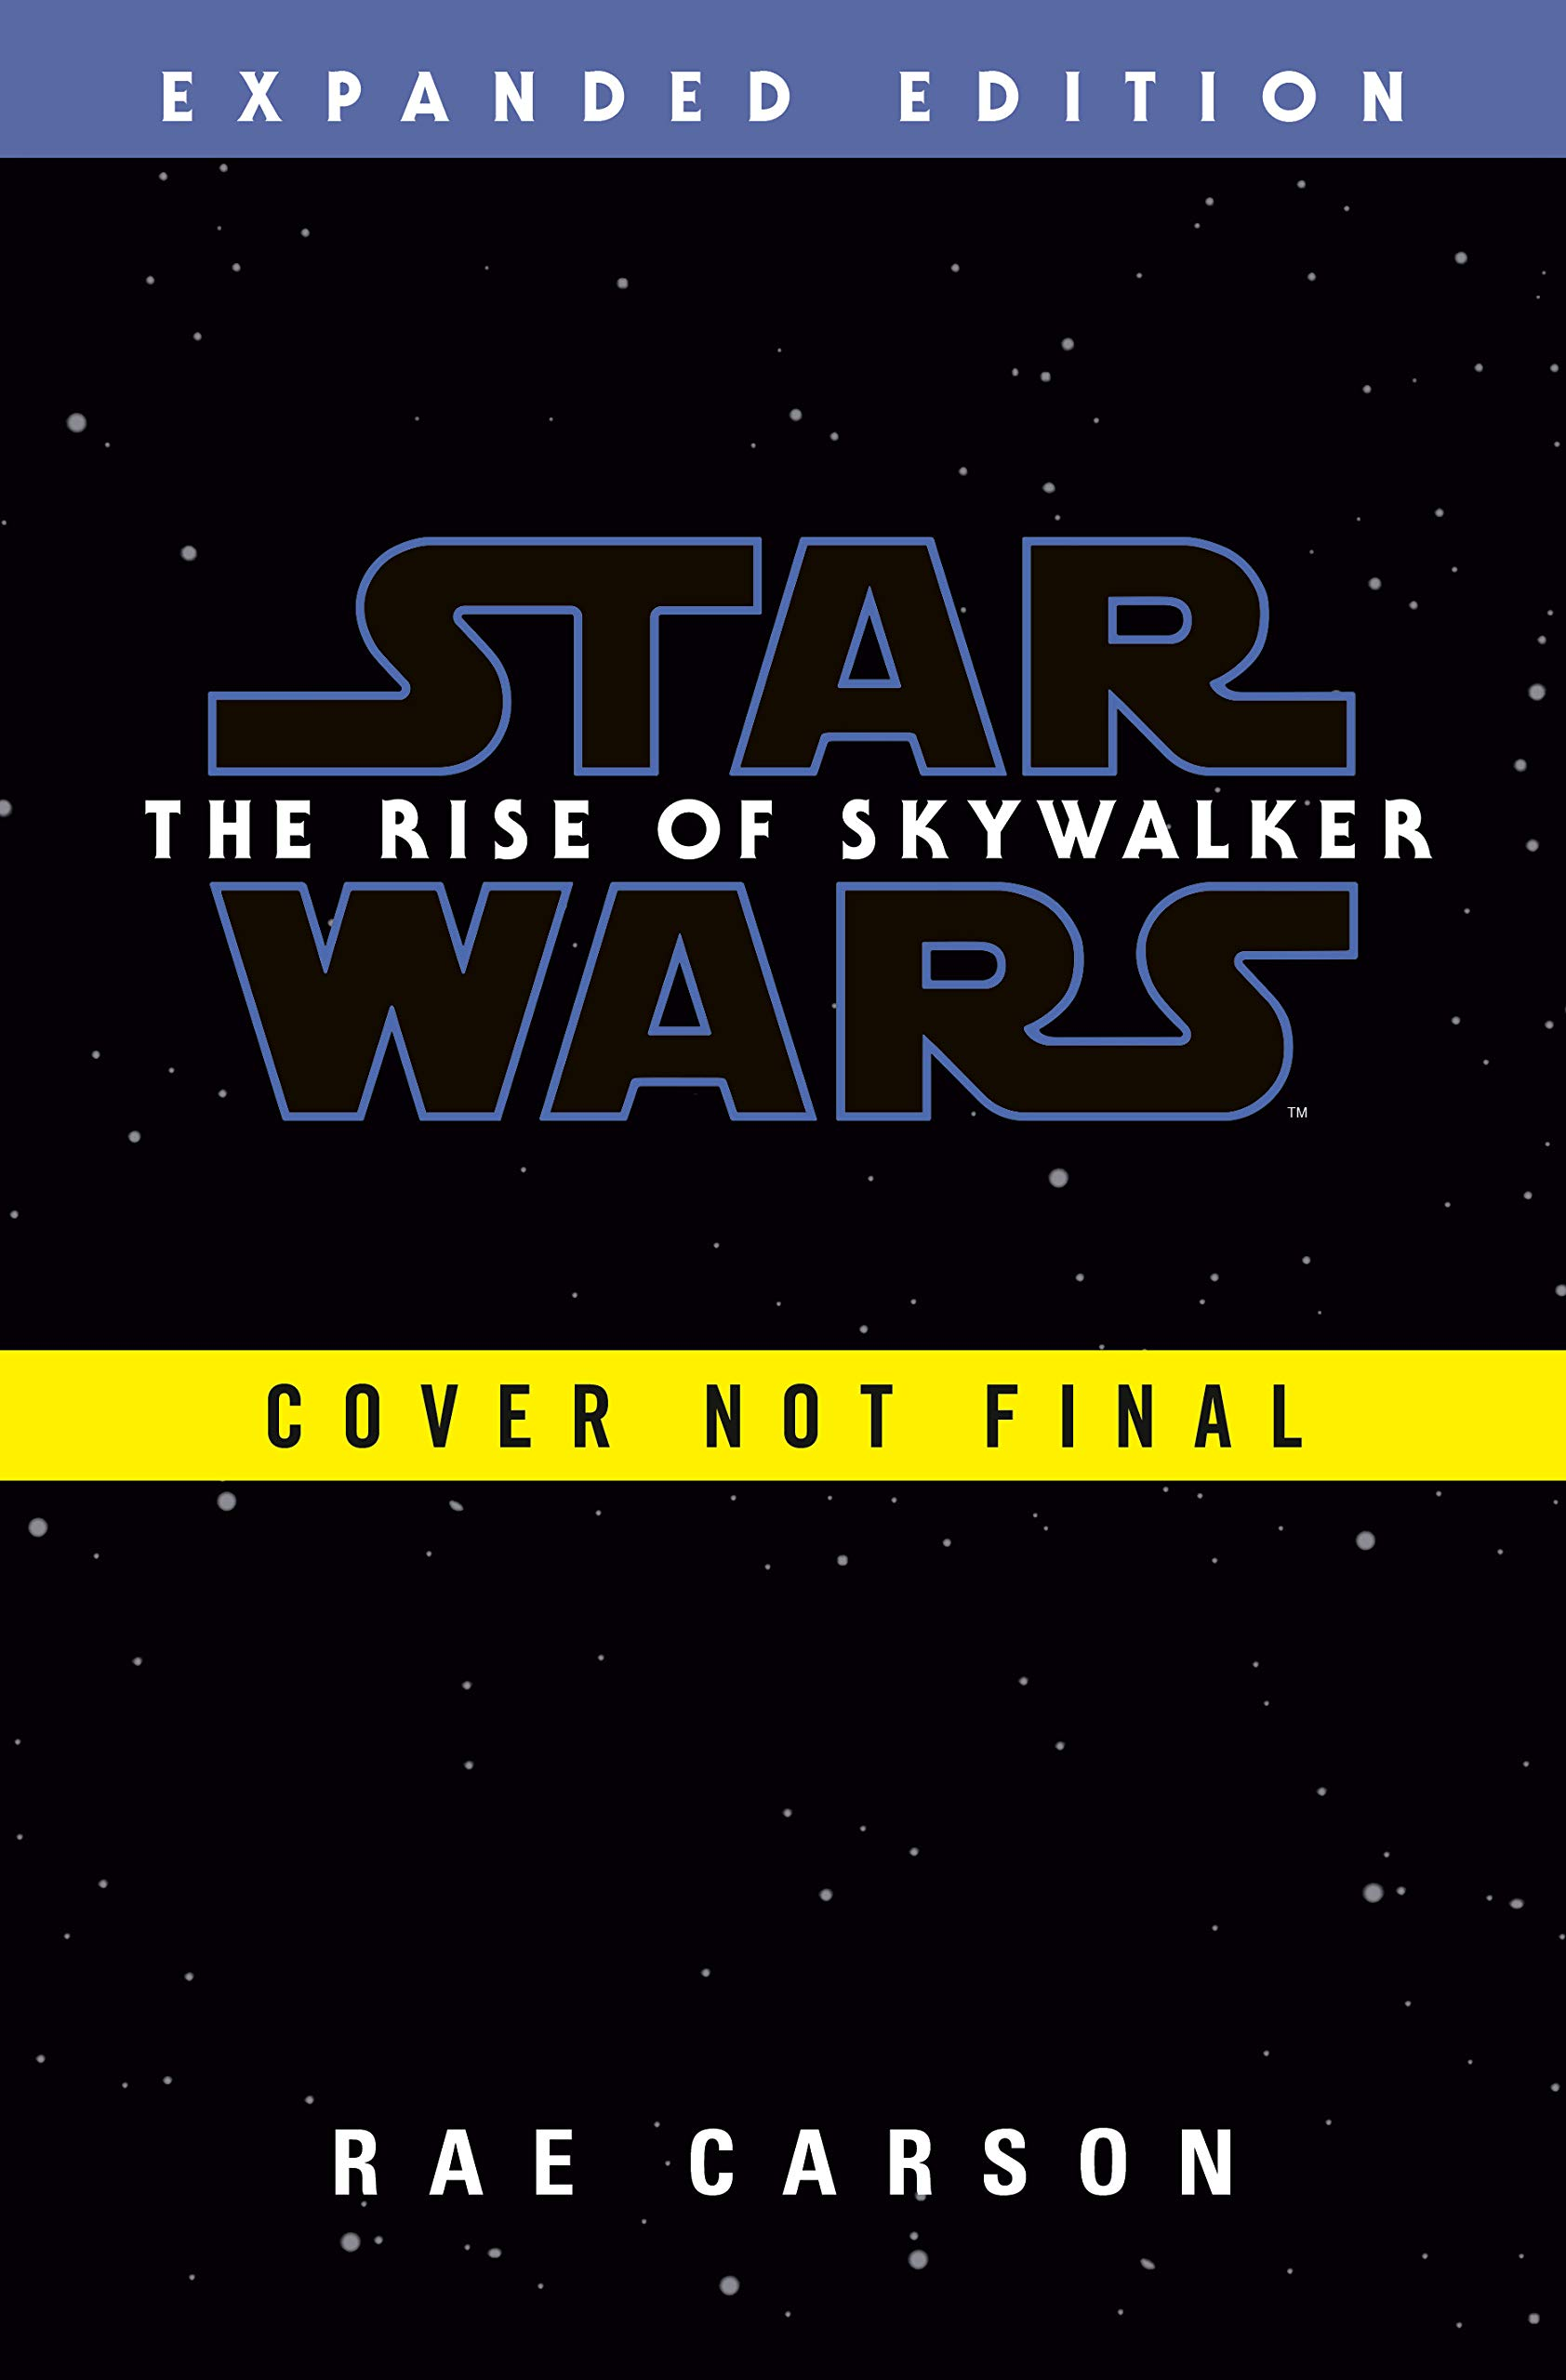 The Rise of Skywalker: Expanded Edition (Star Wars) by Del Rey